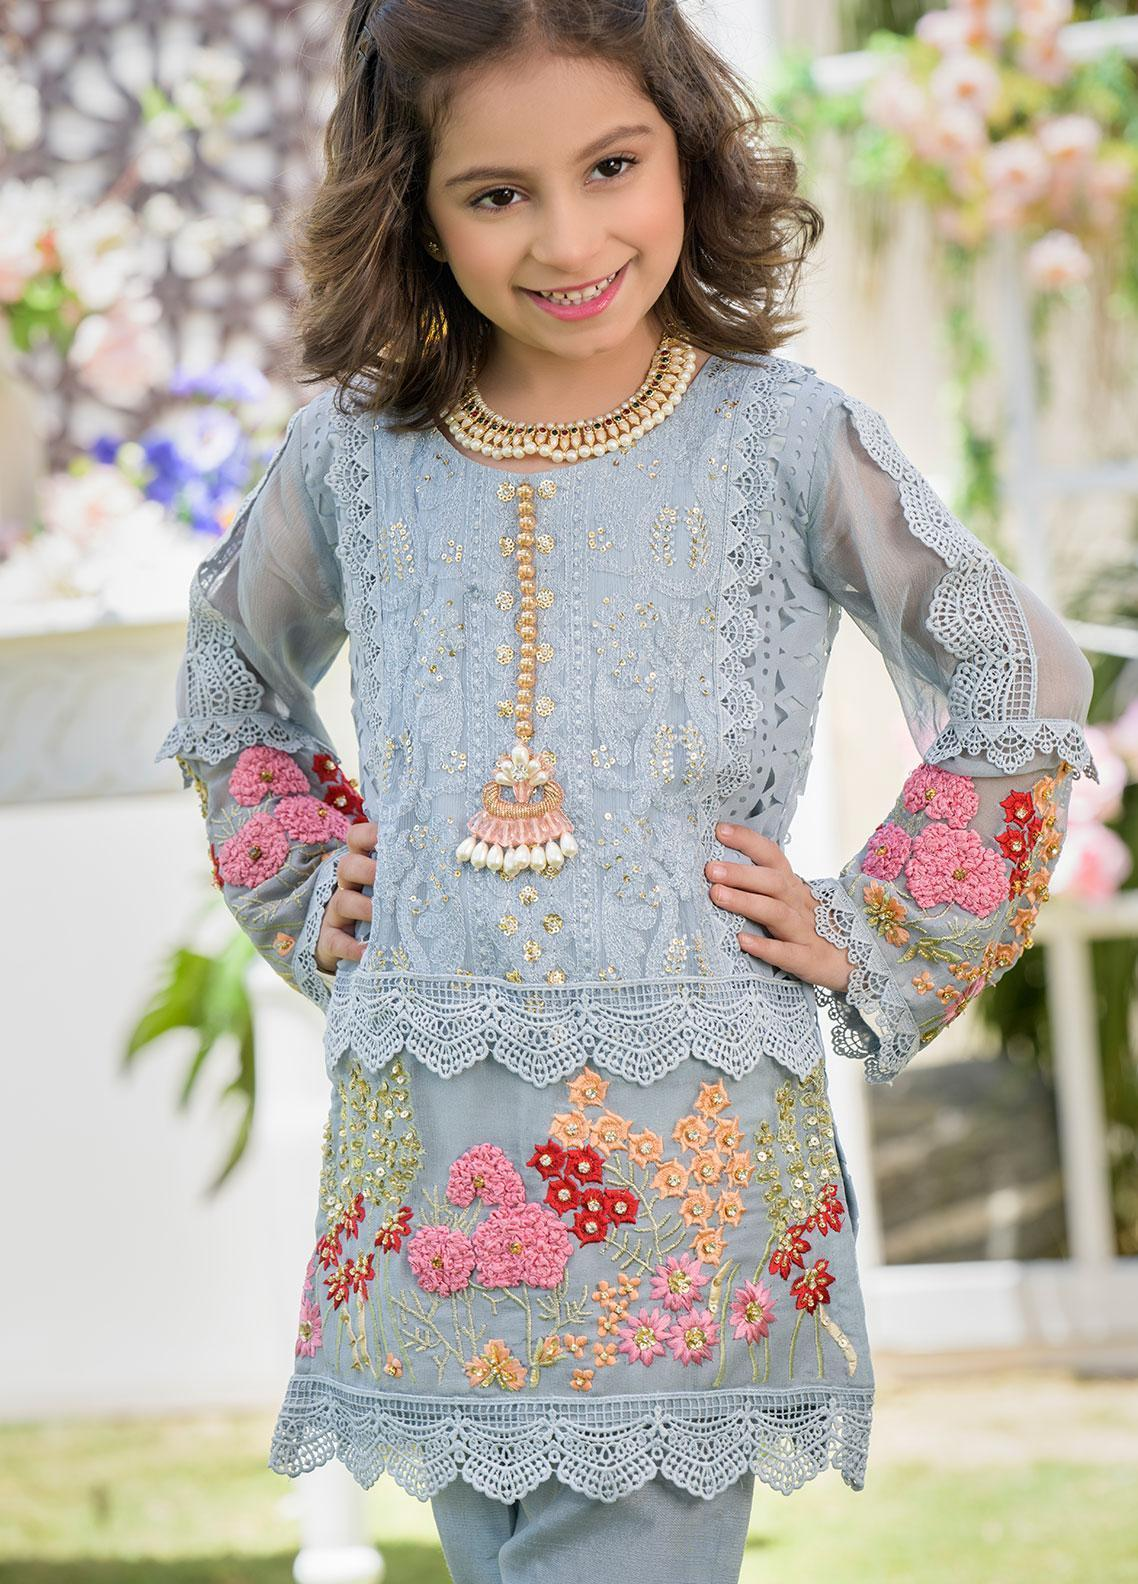 Chic Ophicial Chiffon Formal 2 Piece Suit for Girls - CH20 Carnation Grey